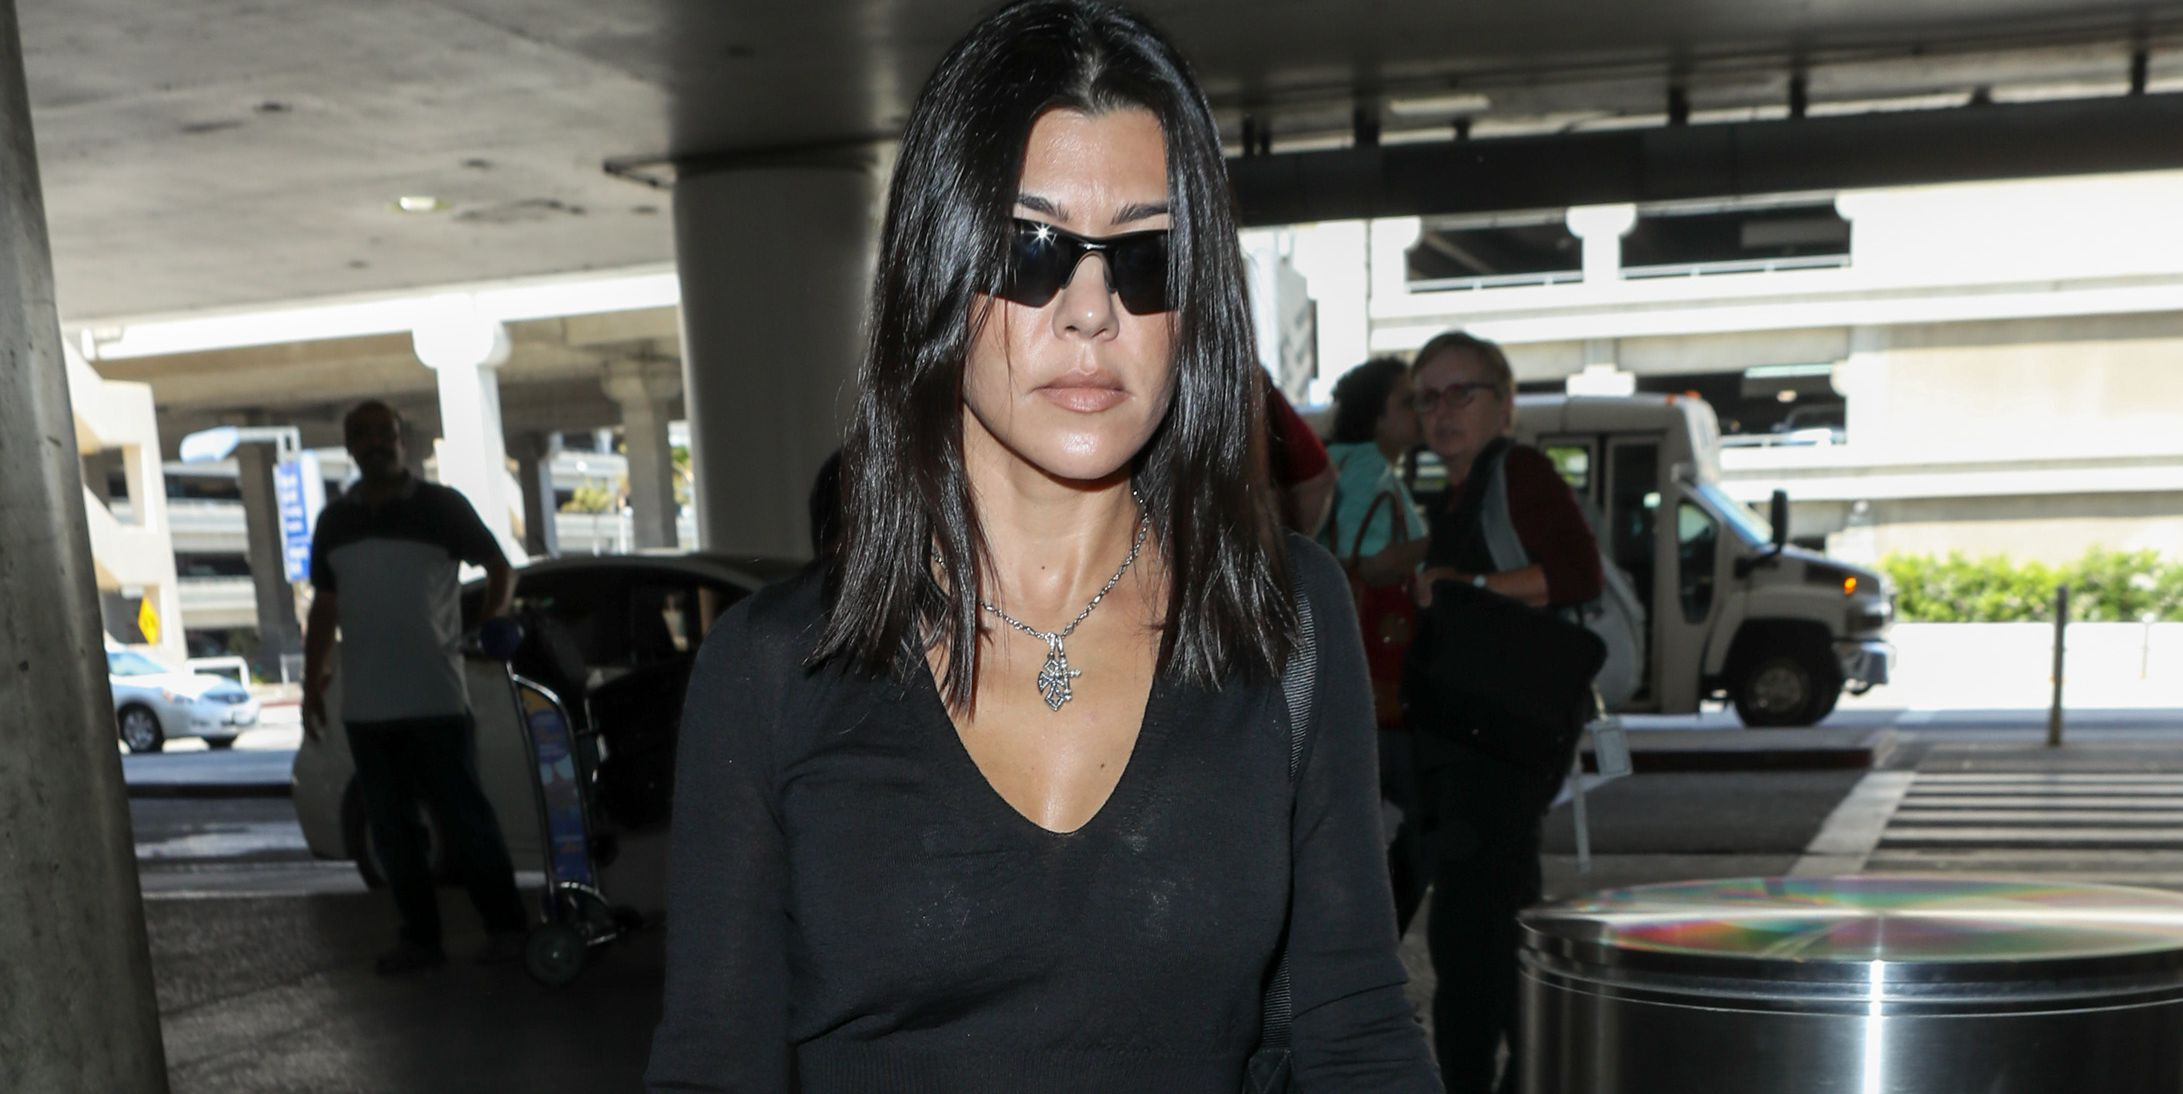 Communication on this topic: Why Fans Are Criticizing Kourtney Kardashian's Work , why-fans-are-criticizing-kourtney-kardashians-work/